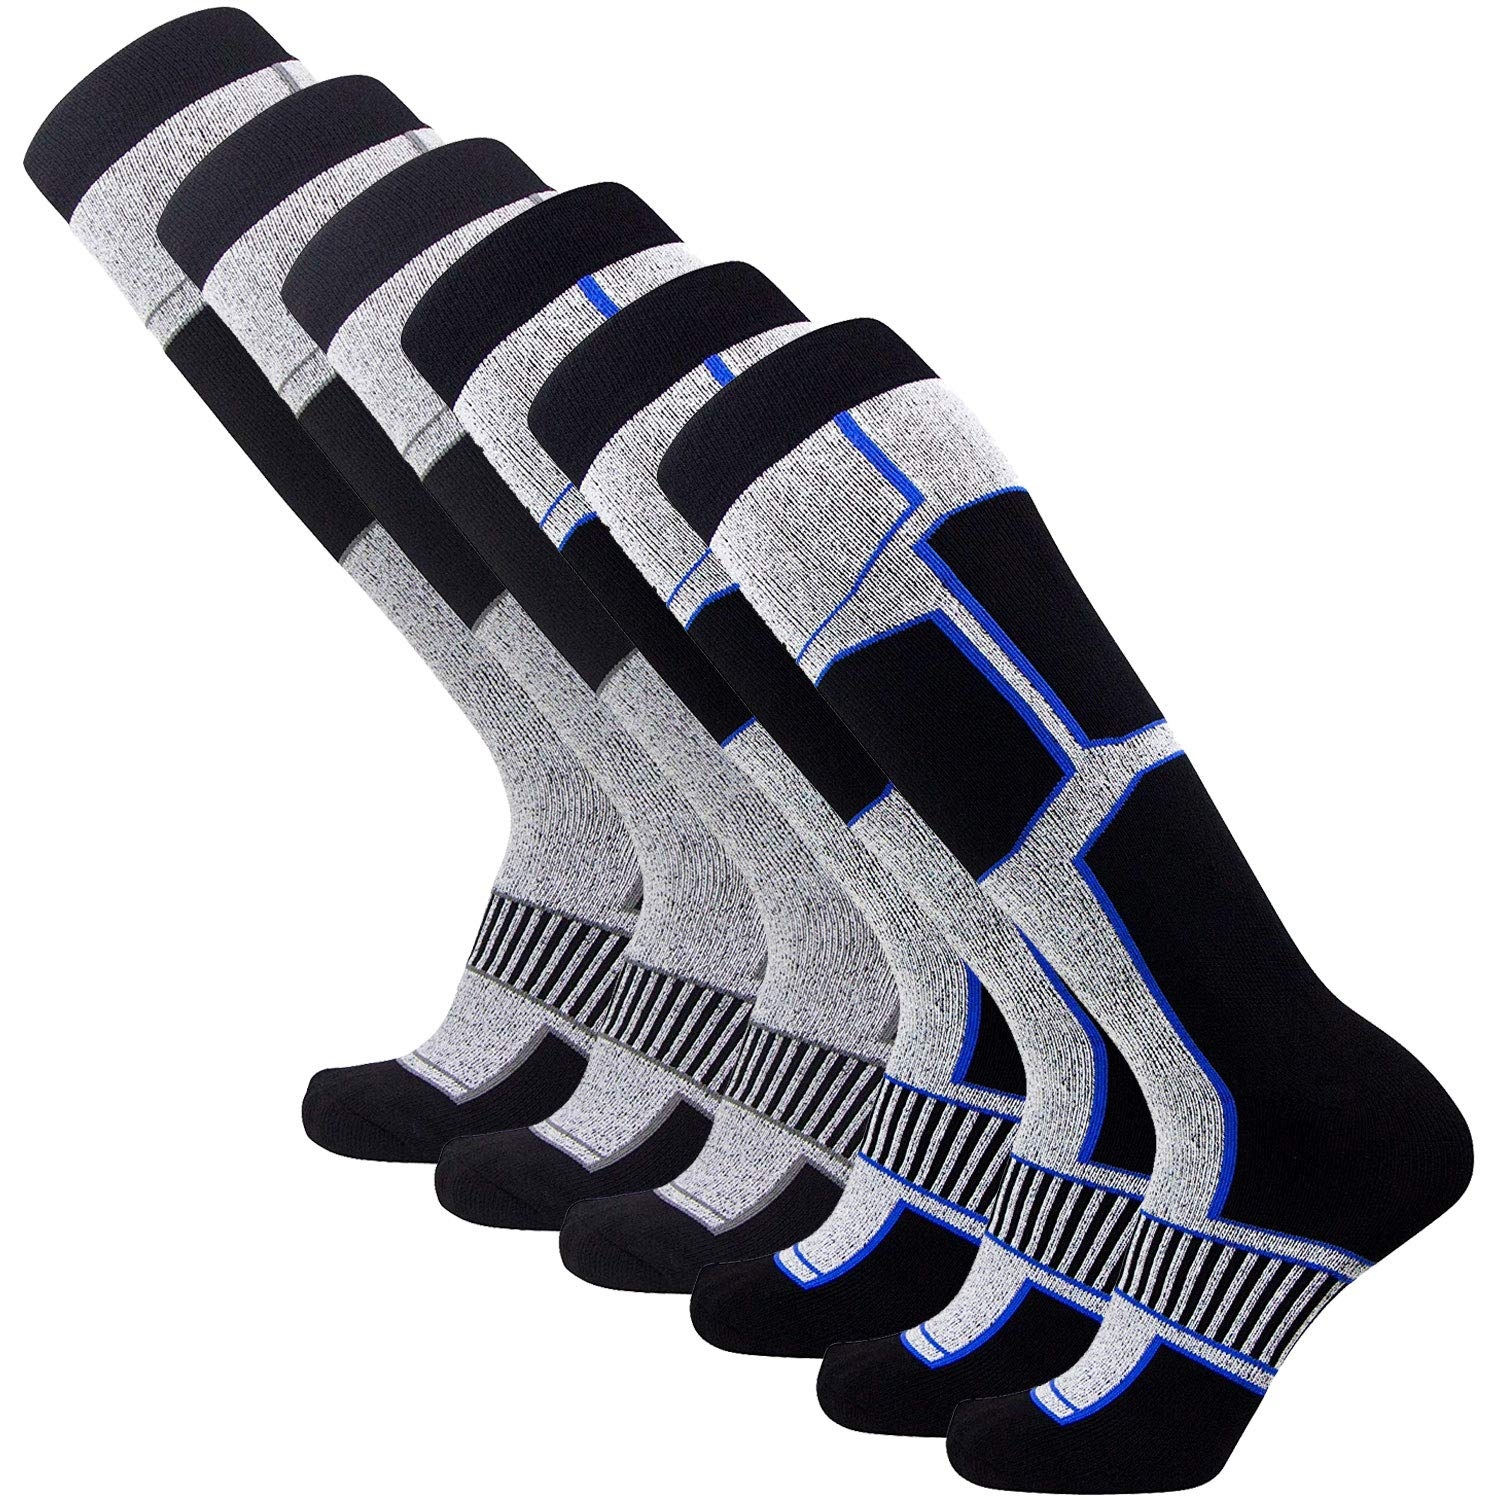 Pure Athlete Snowboard Socks - Comfortable Warm Skiing Snowboarding Sock for Men and Women (6 Pairs - Black-Blue (3) + Black Silver (3), Large)